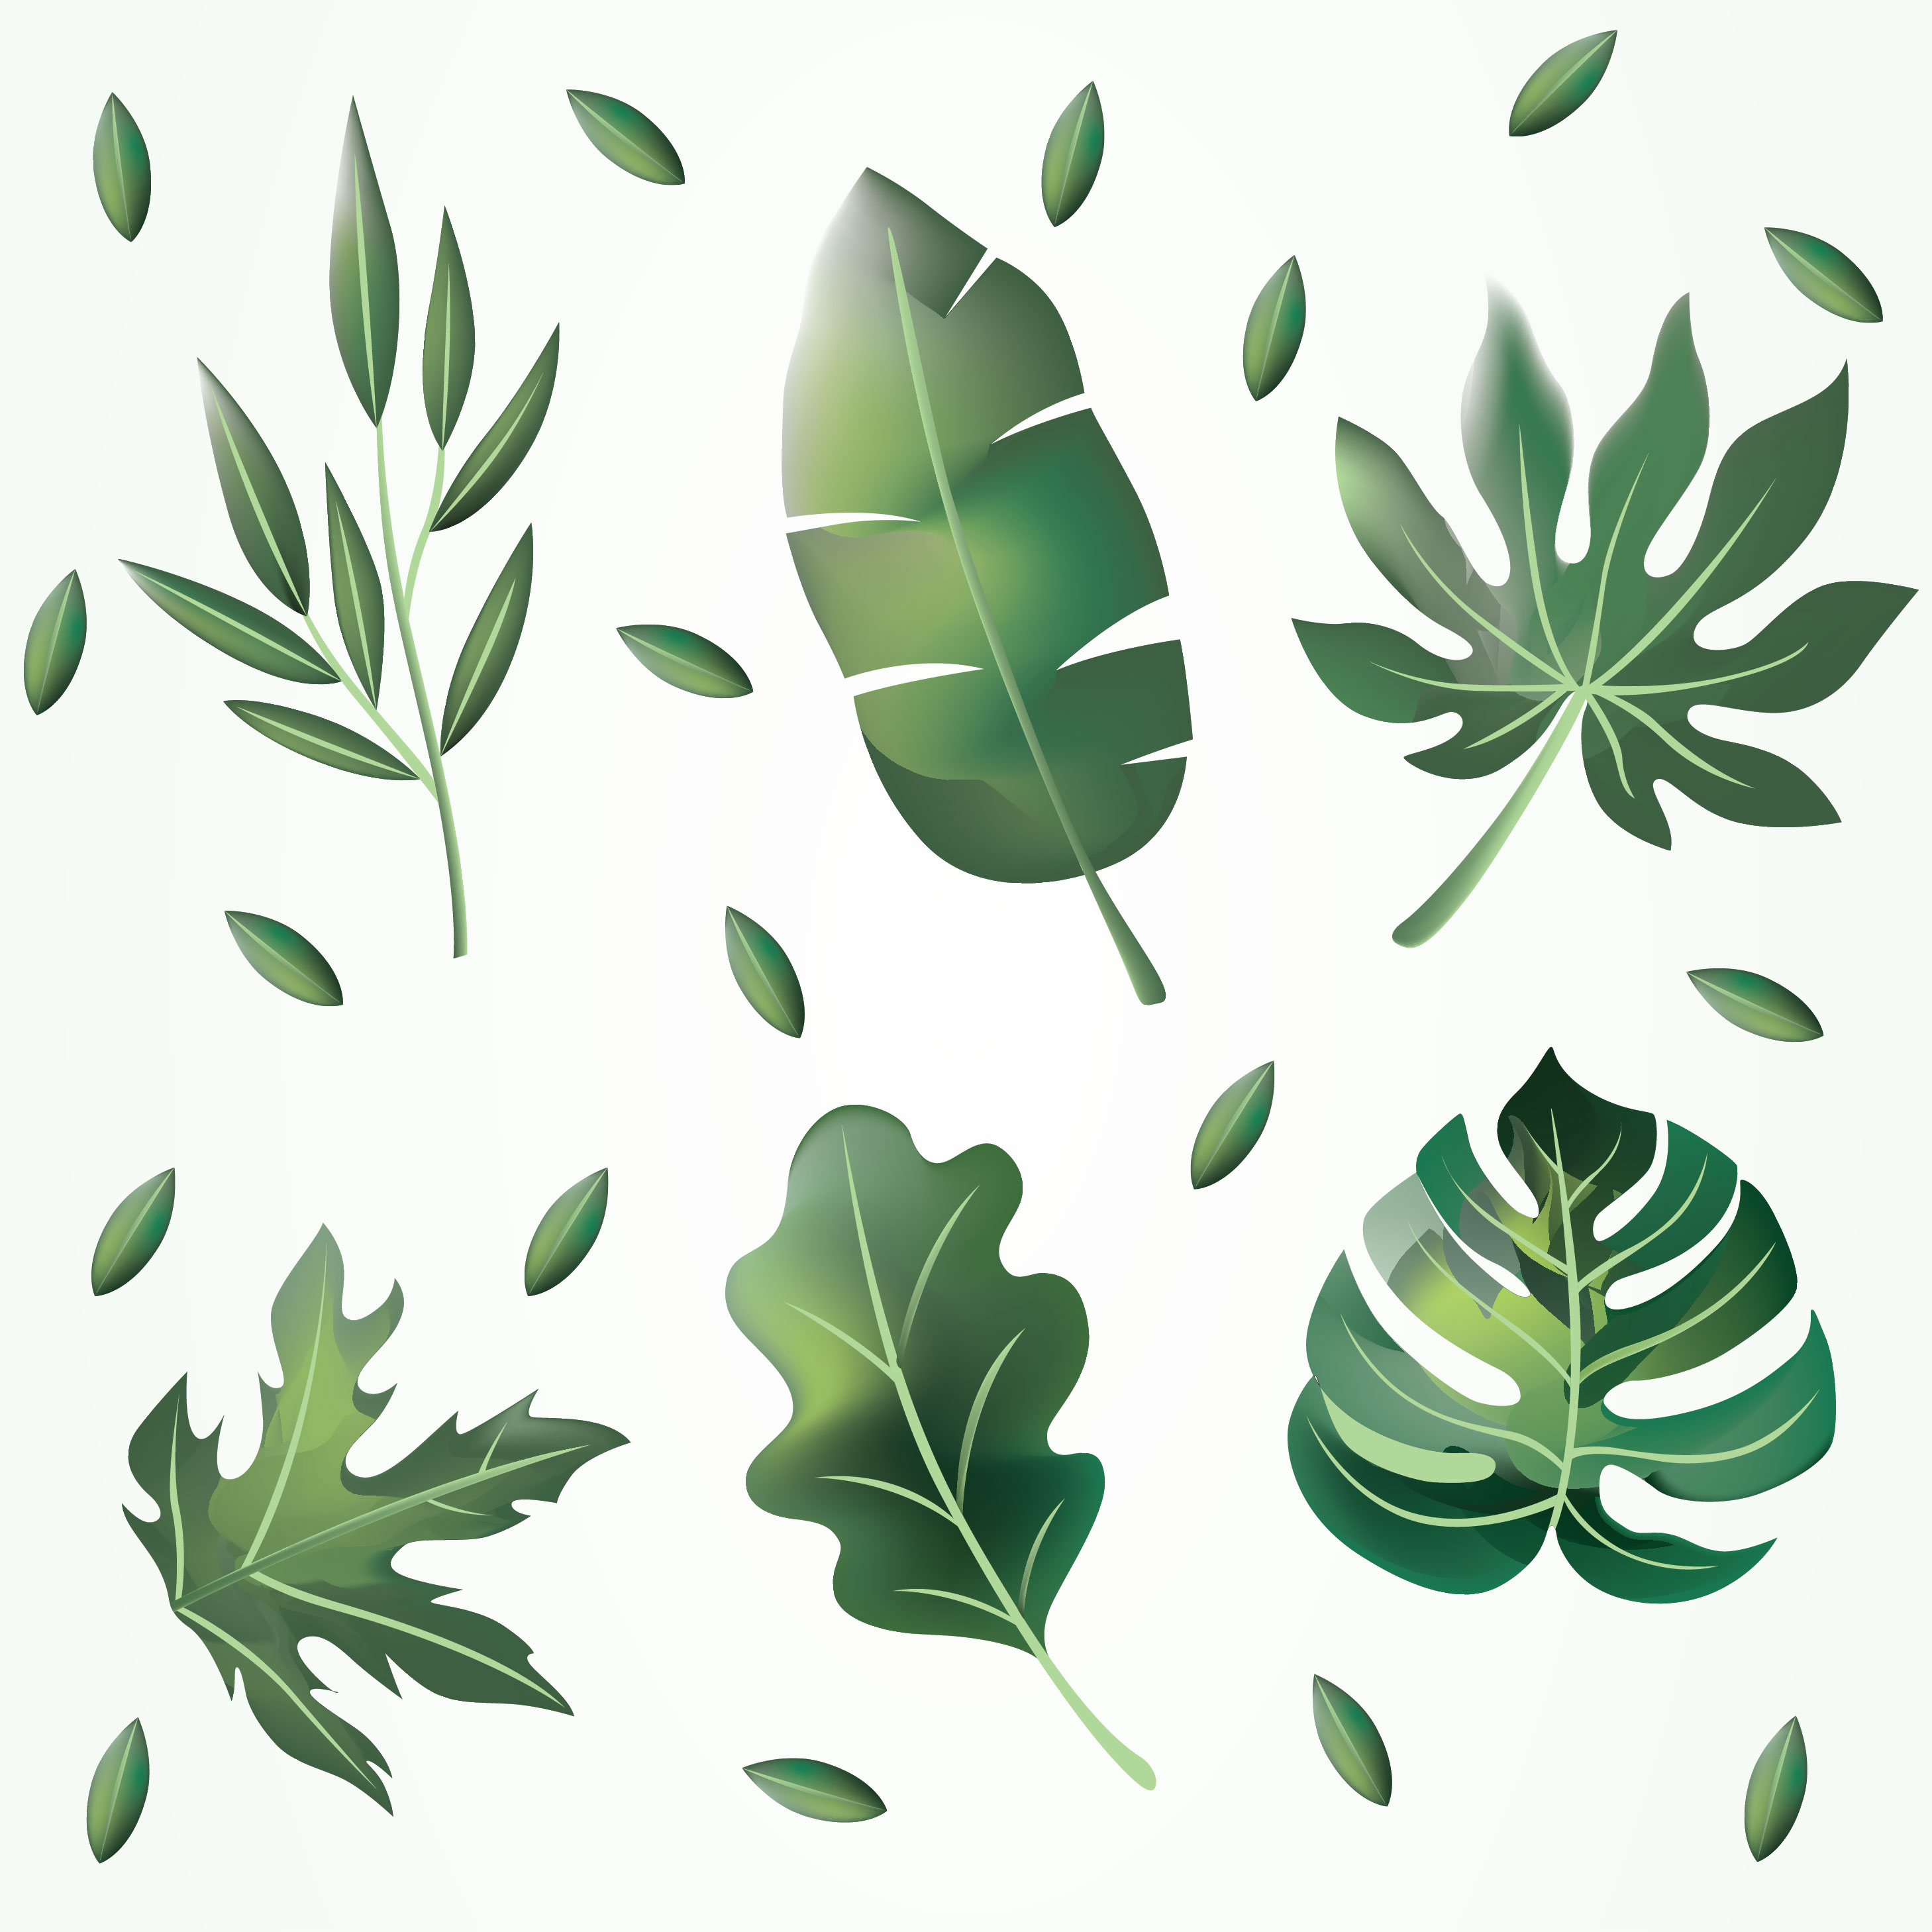 Green Leaves Clipart Vector Pack - Download Free Vectors ...